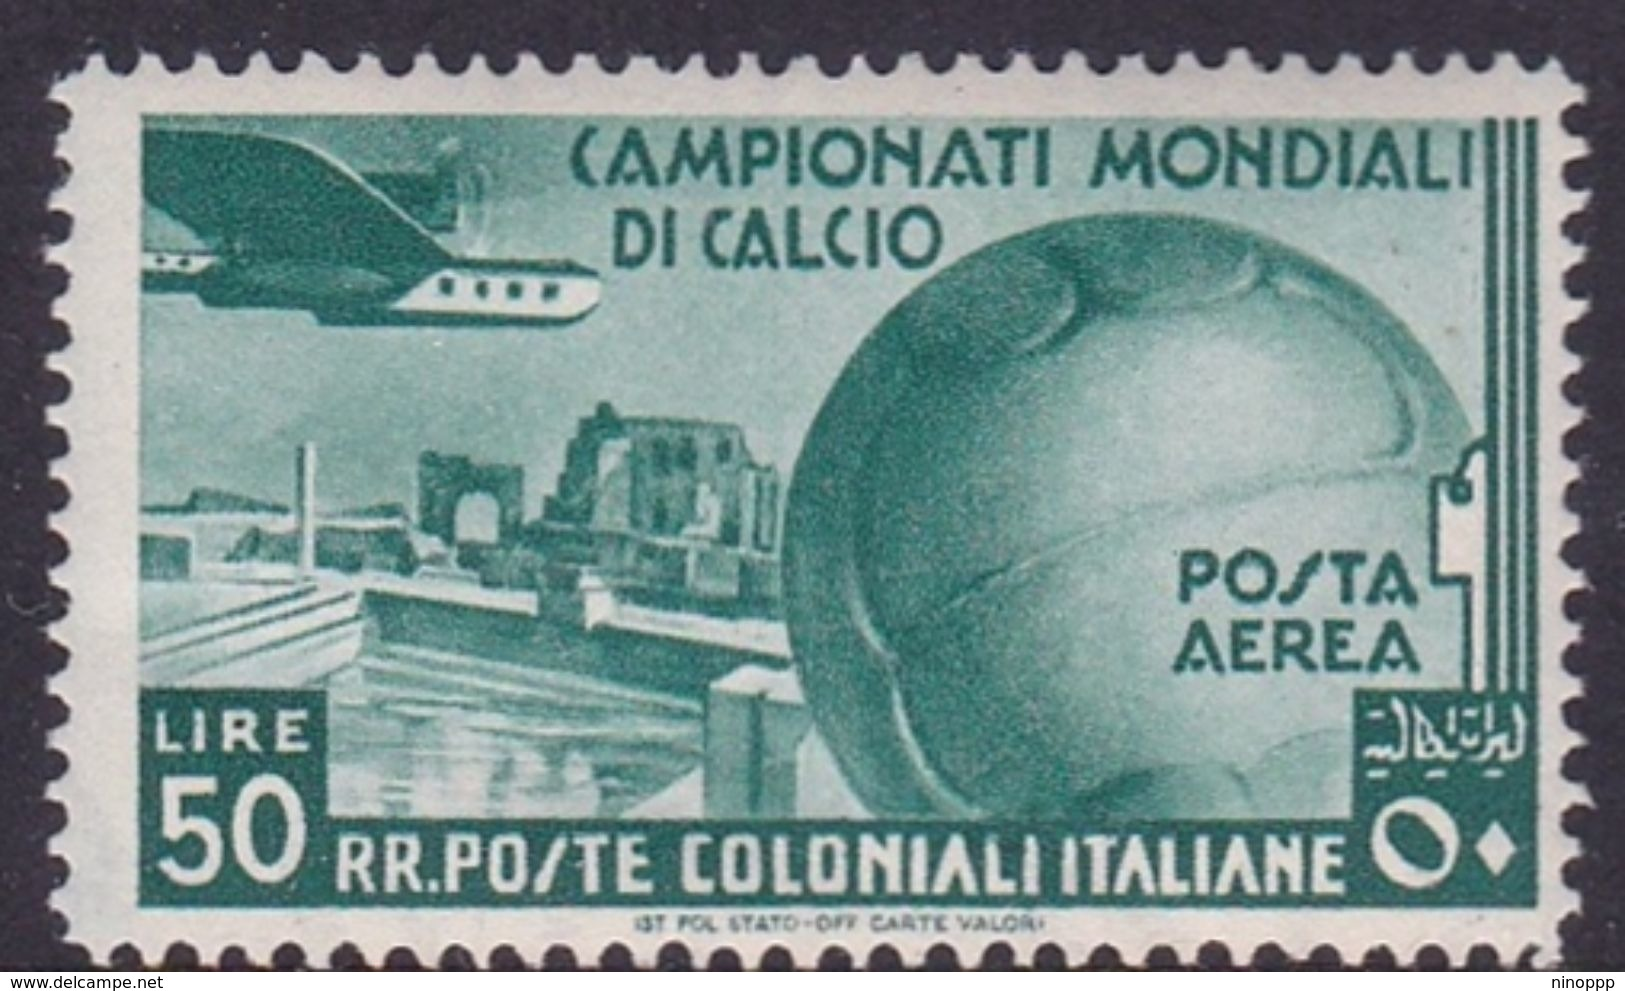 Italy-Colonies And Territories-Aegean General Issue-AP 37 1934 Football World Championship Lire 50 Green MNH - Italy